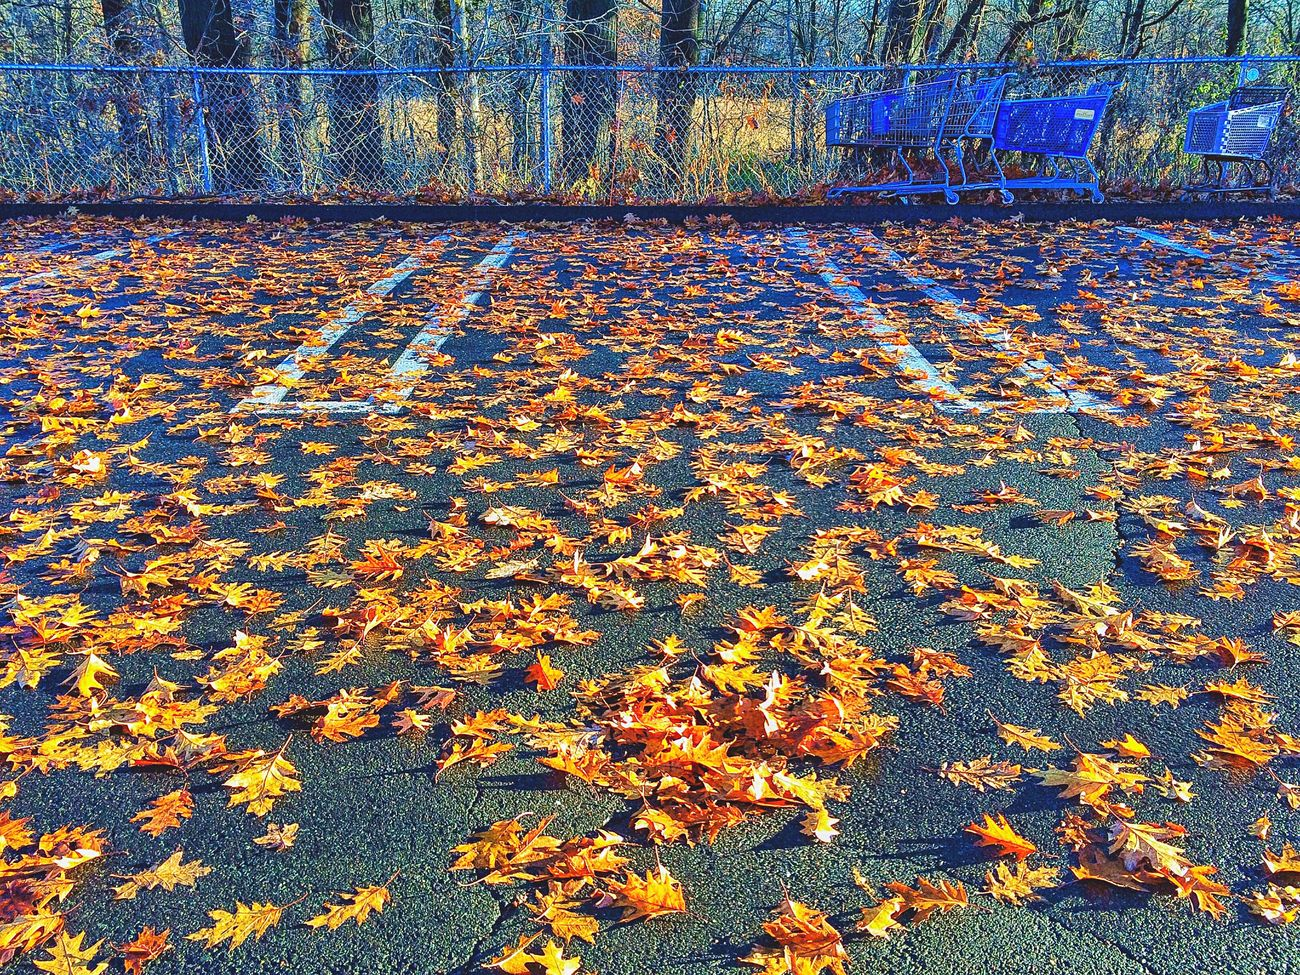 Leaves... Leaf Autumn Nature Outdoors Sunlight No People Field Change Day Beauty In Nature Tranquility Close-up Foliage December Carpark Car Park